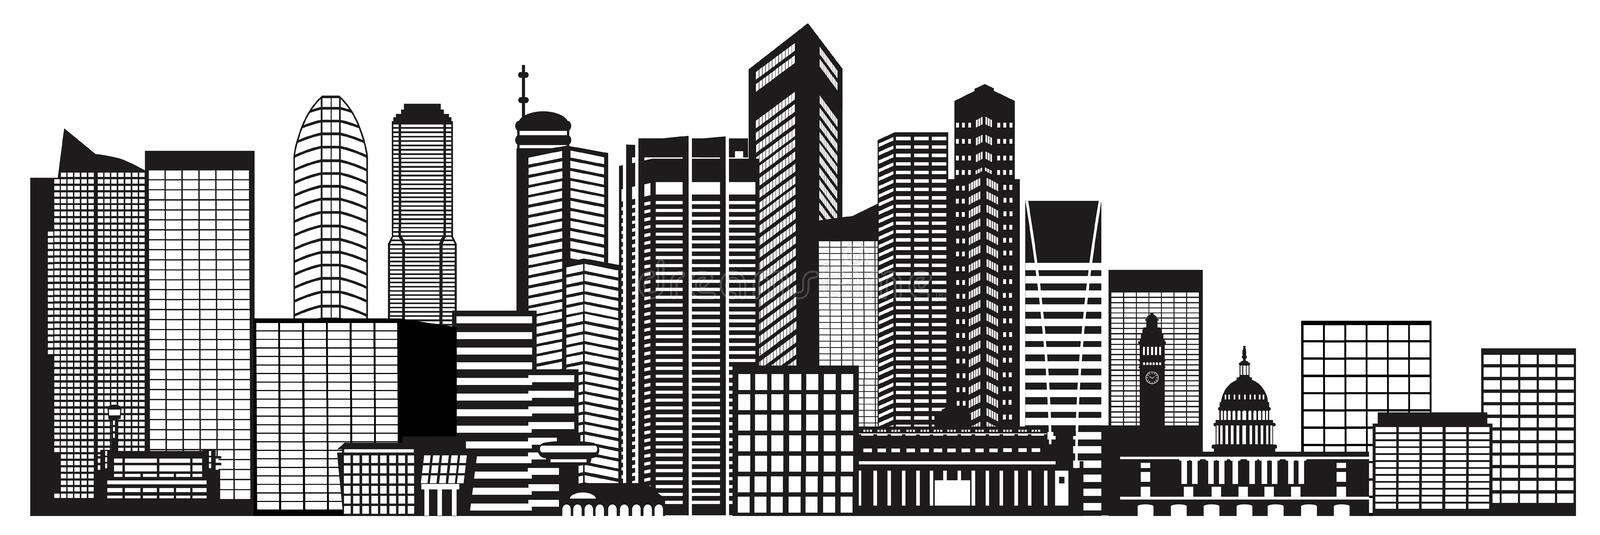 Download singapore city skyline black and white illustration stock illustration illustration of black esplanade